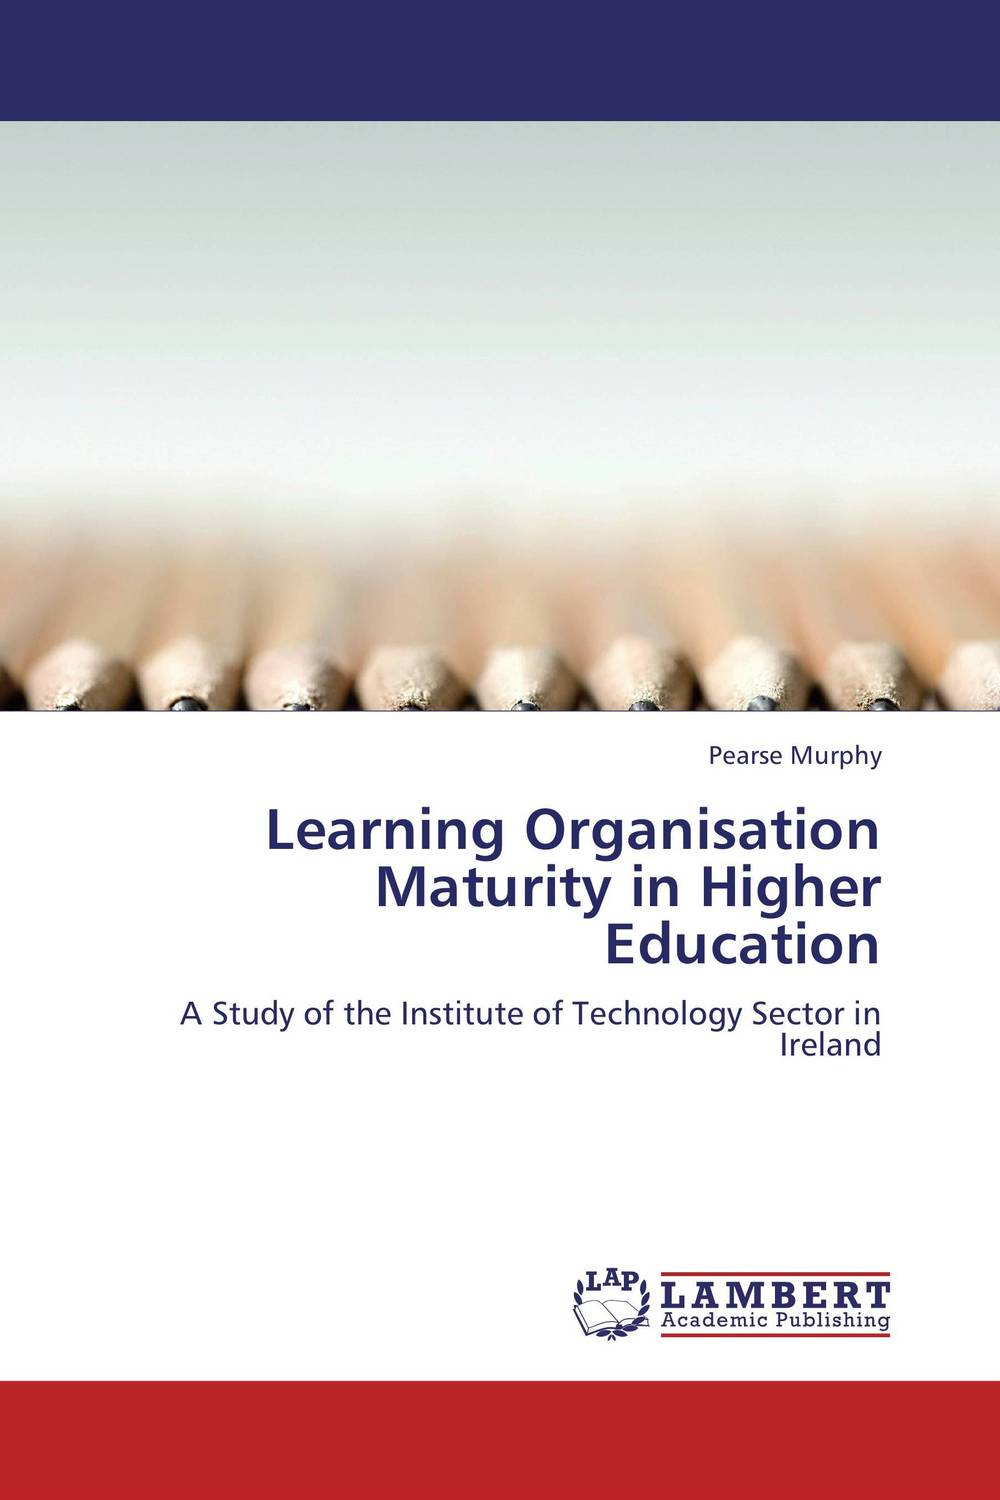 Learning Organisation Maturity in Higher Education dimitrios stergiou good teaching in tourism higher education